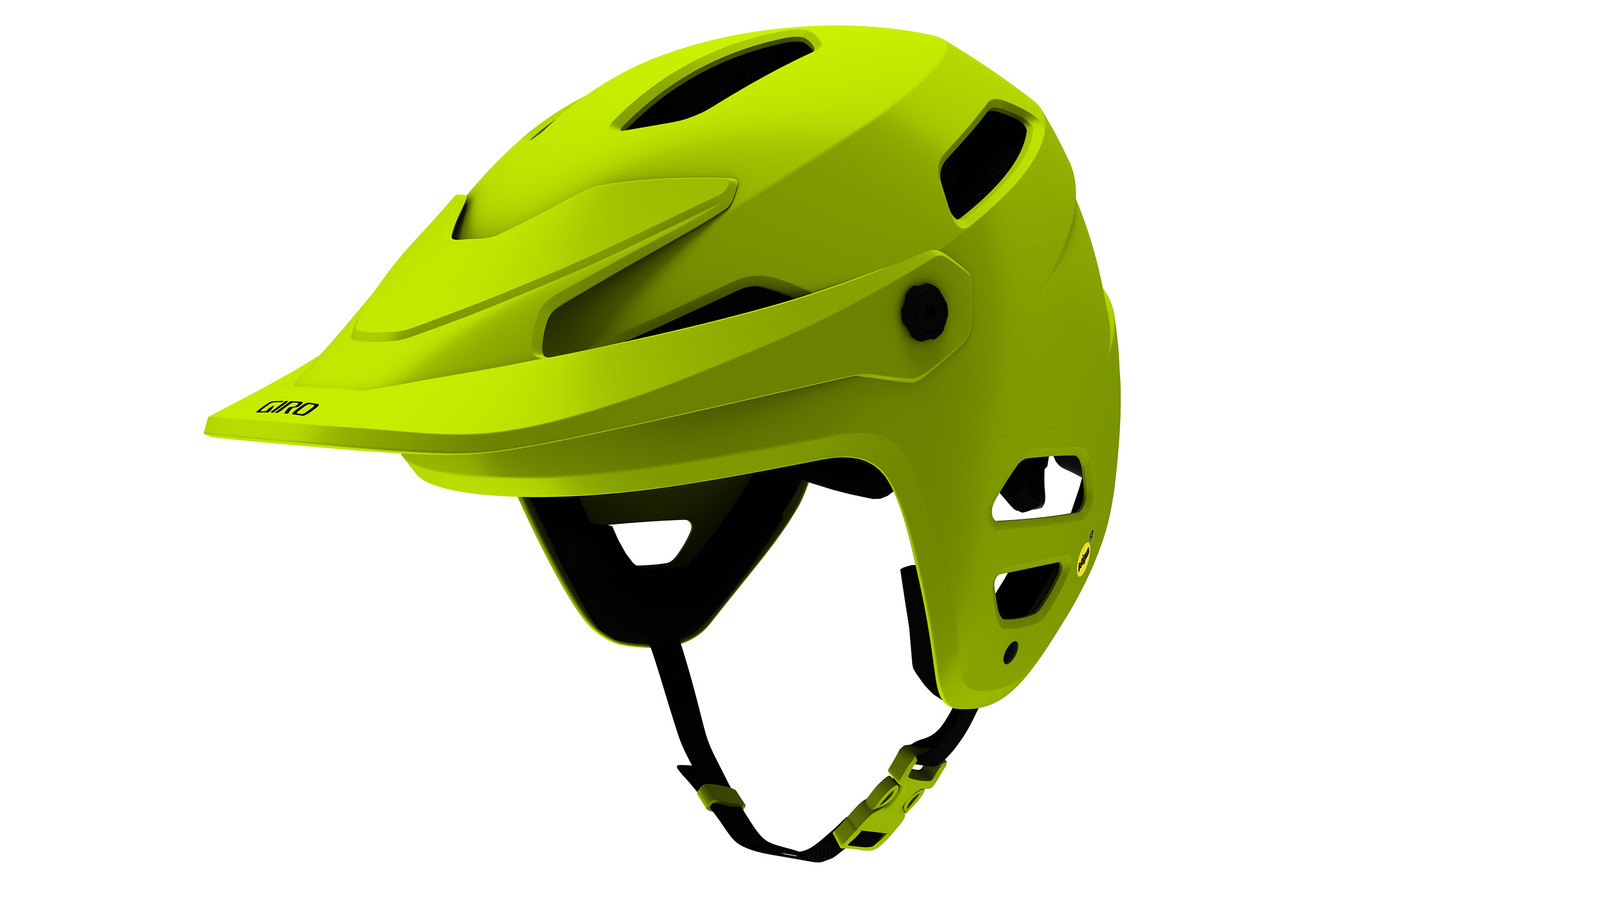 Giro Launches the Tyrant MIPS MTB Trail Helmet for Progressive Riders